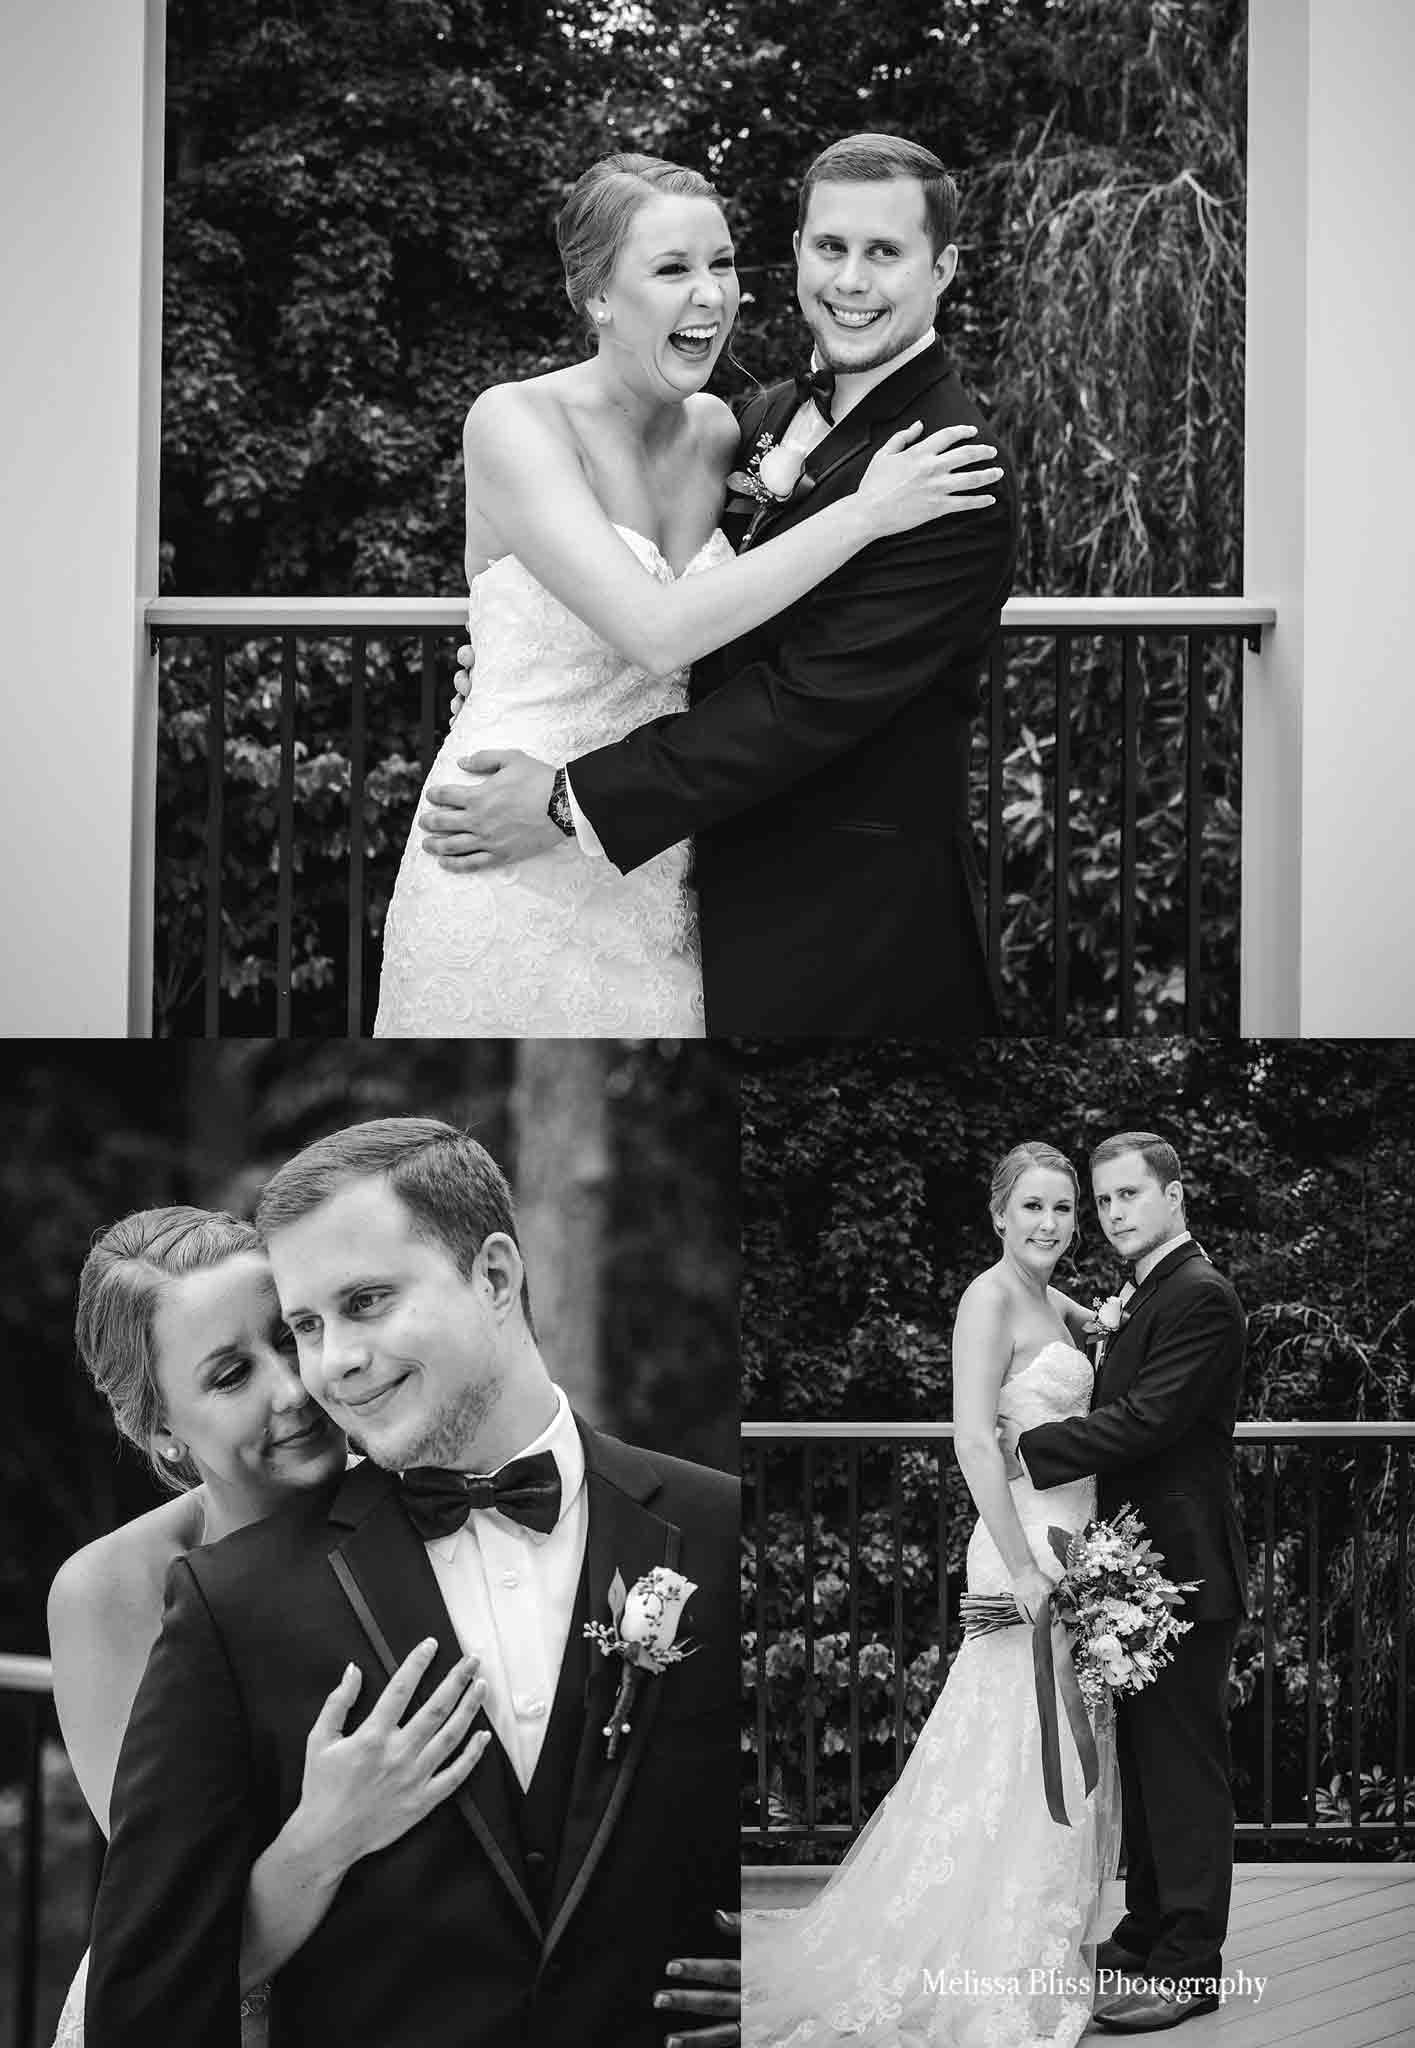 bride-and-groom-portraits-williamsburg-wedding-photographer-melissa-bliss-photography-norfolk-virginia-beach-charlottesville-wedding-photographers.jpg